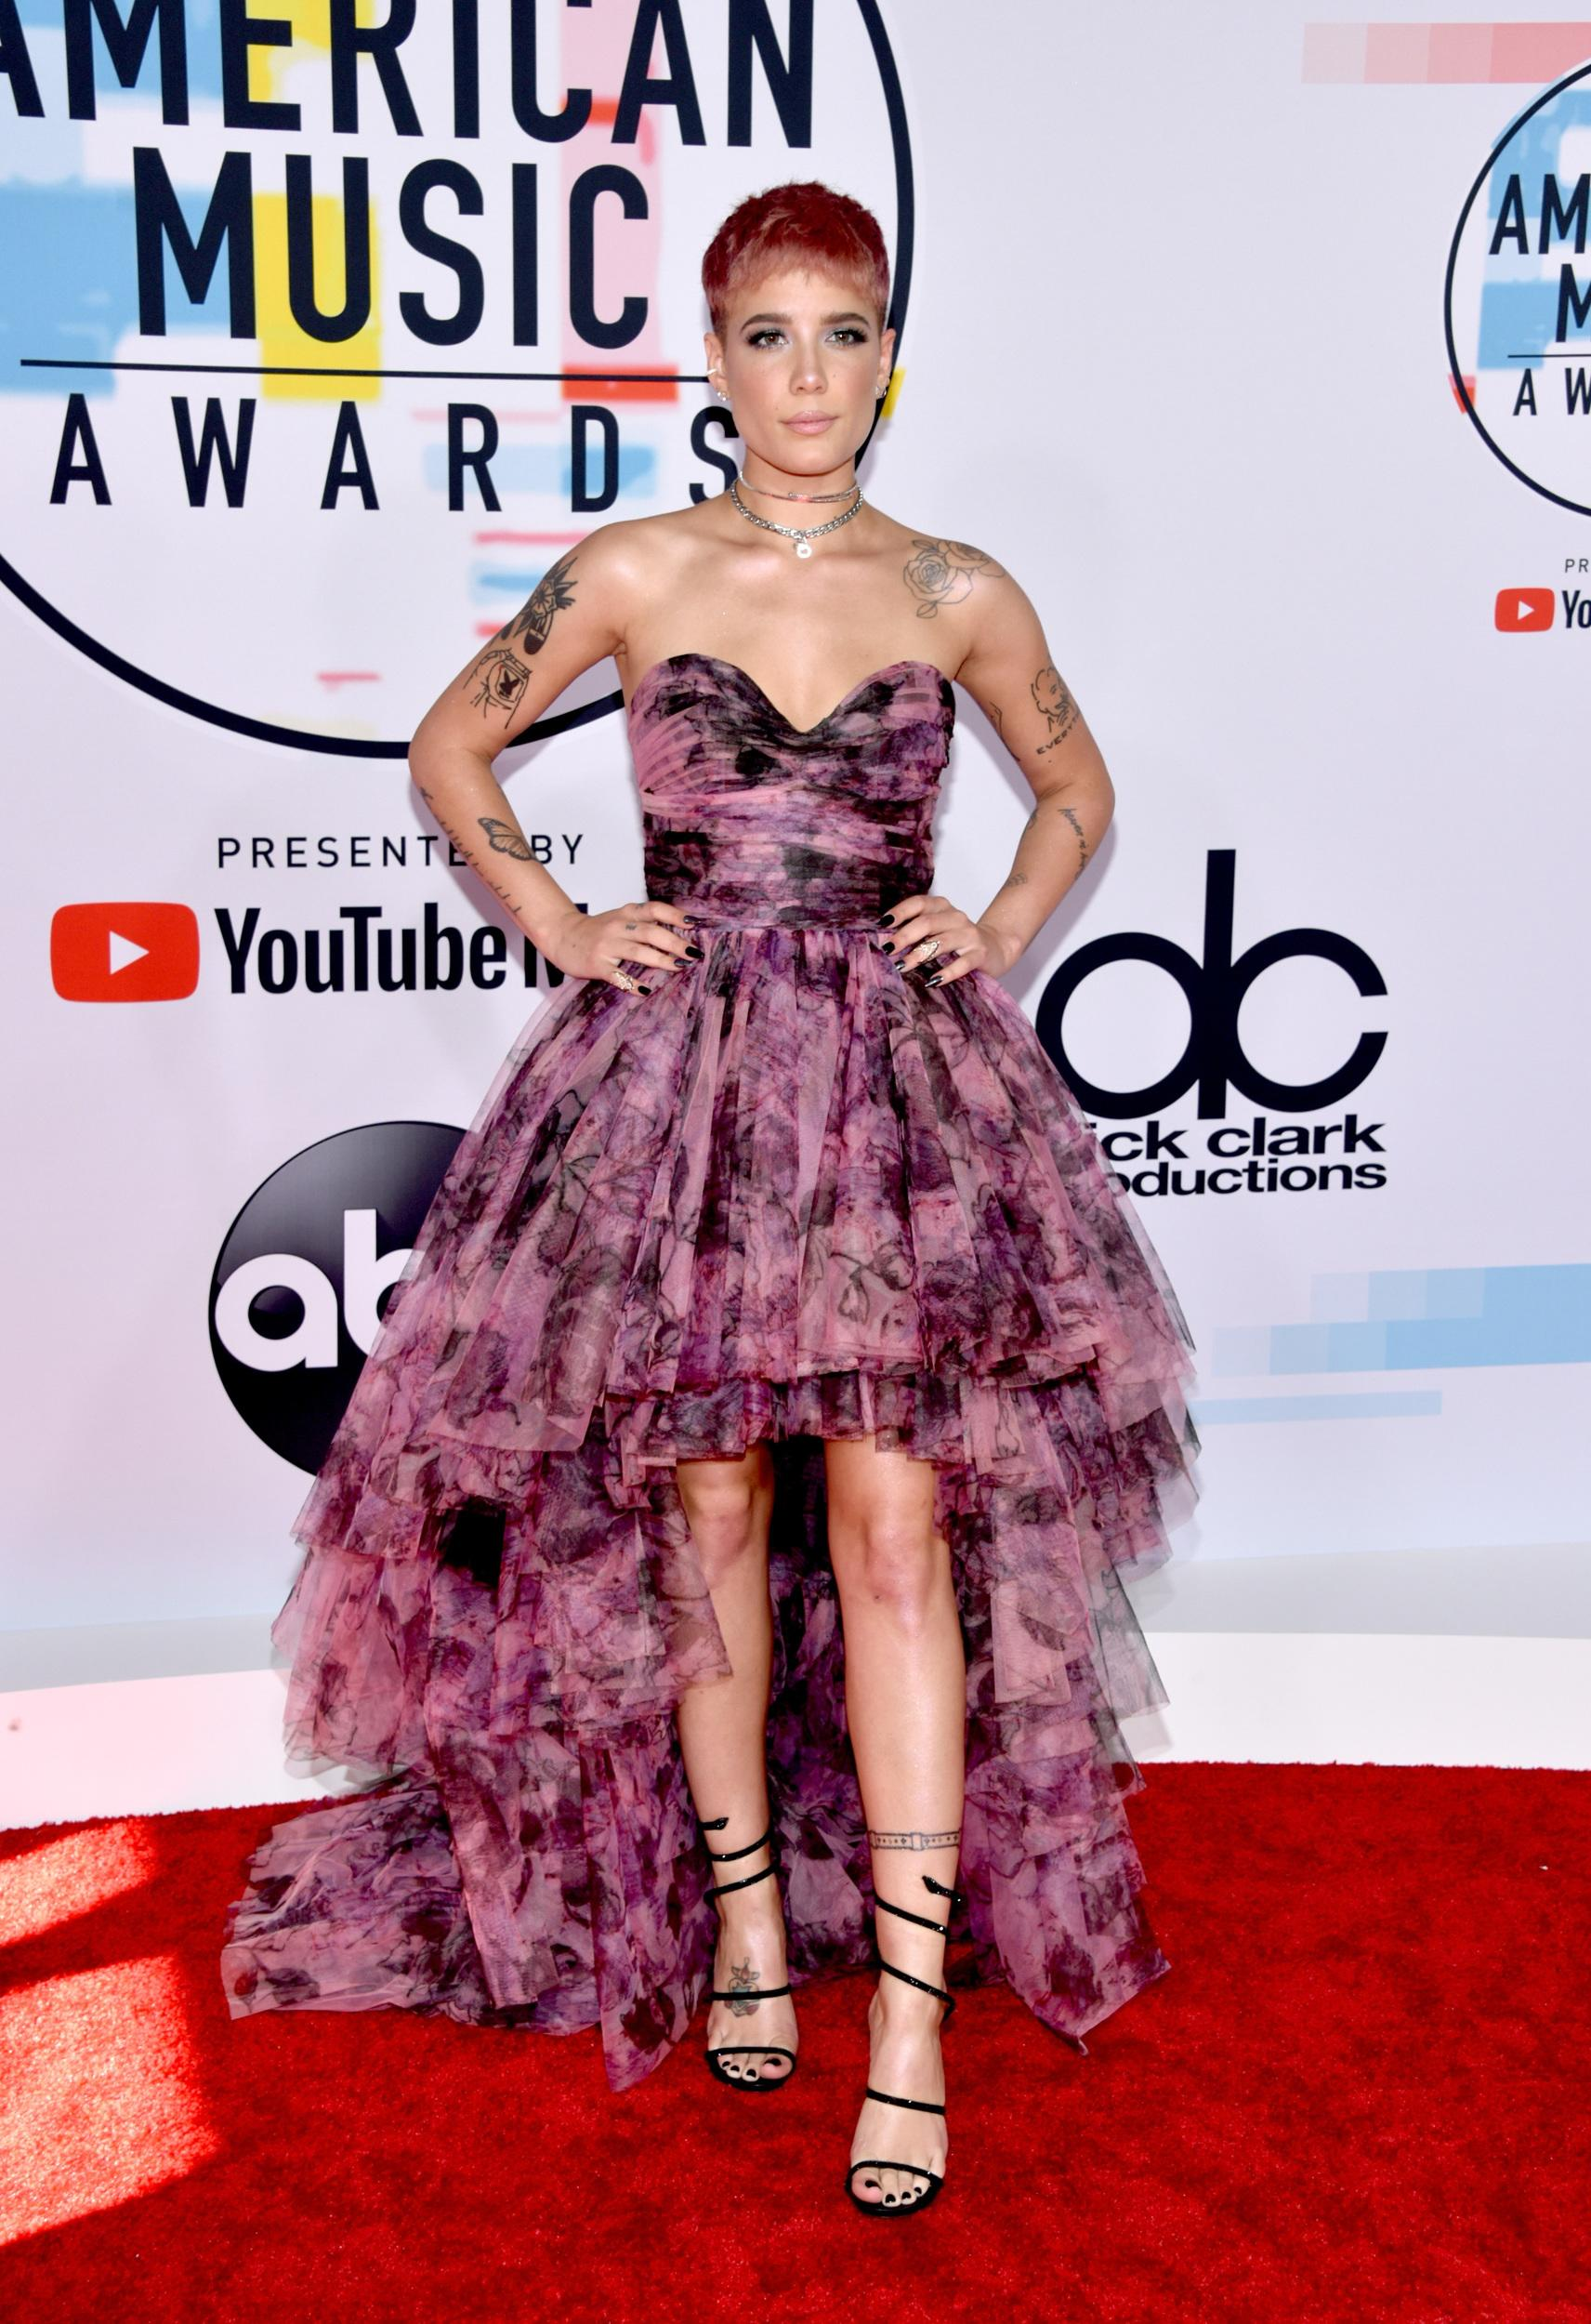 LOS ANGELES, CA - OCTOBER 09:  Halsey attends the 2018 American Music Awards at Microsoft Theater on October 9, 2018 in Los Angeles, California.  (Photo by John Shearer/Getty Images For dcp)